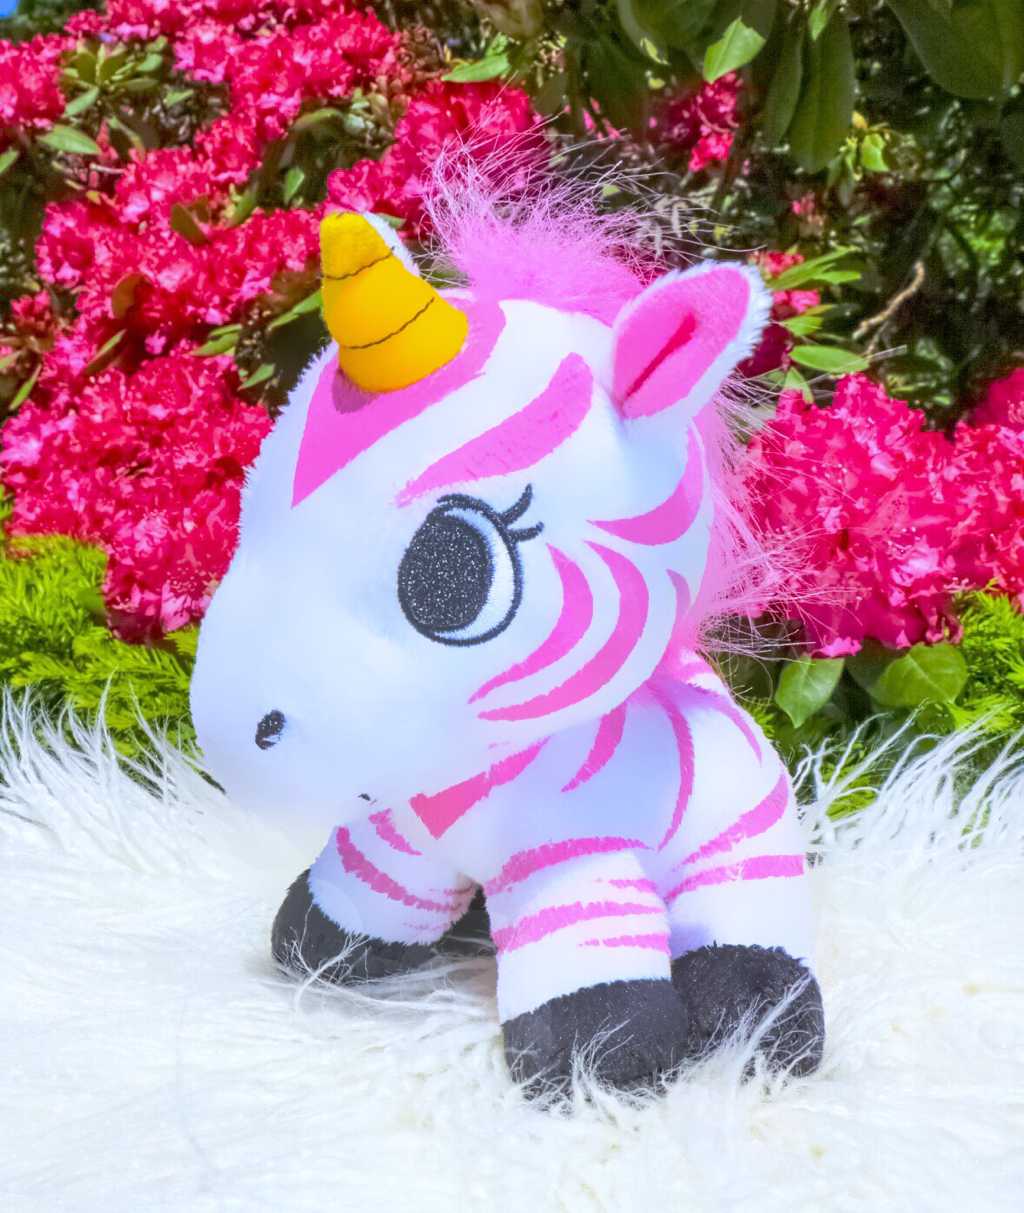 Zoonicorn ~ The Comfiest Little Toy Your Child Needs